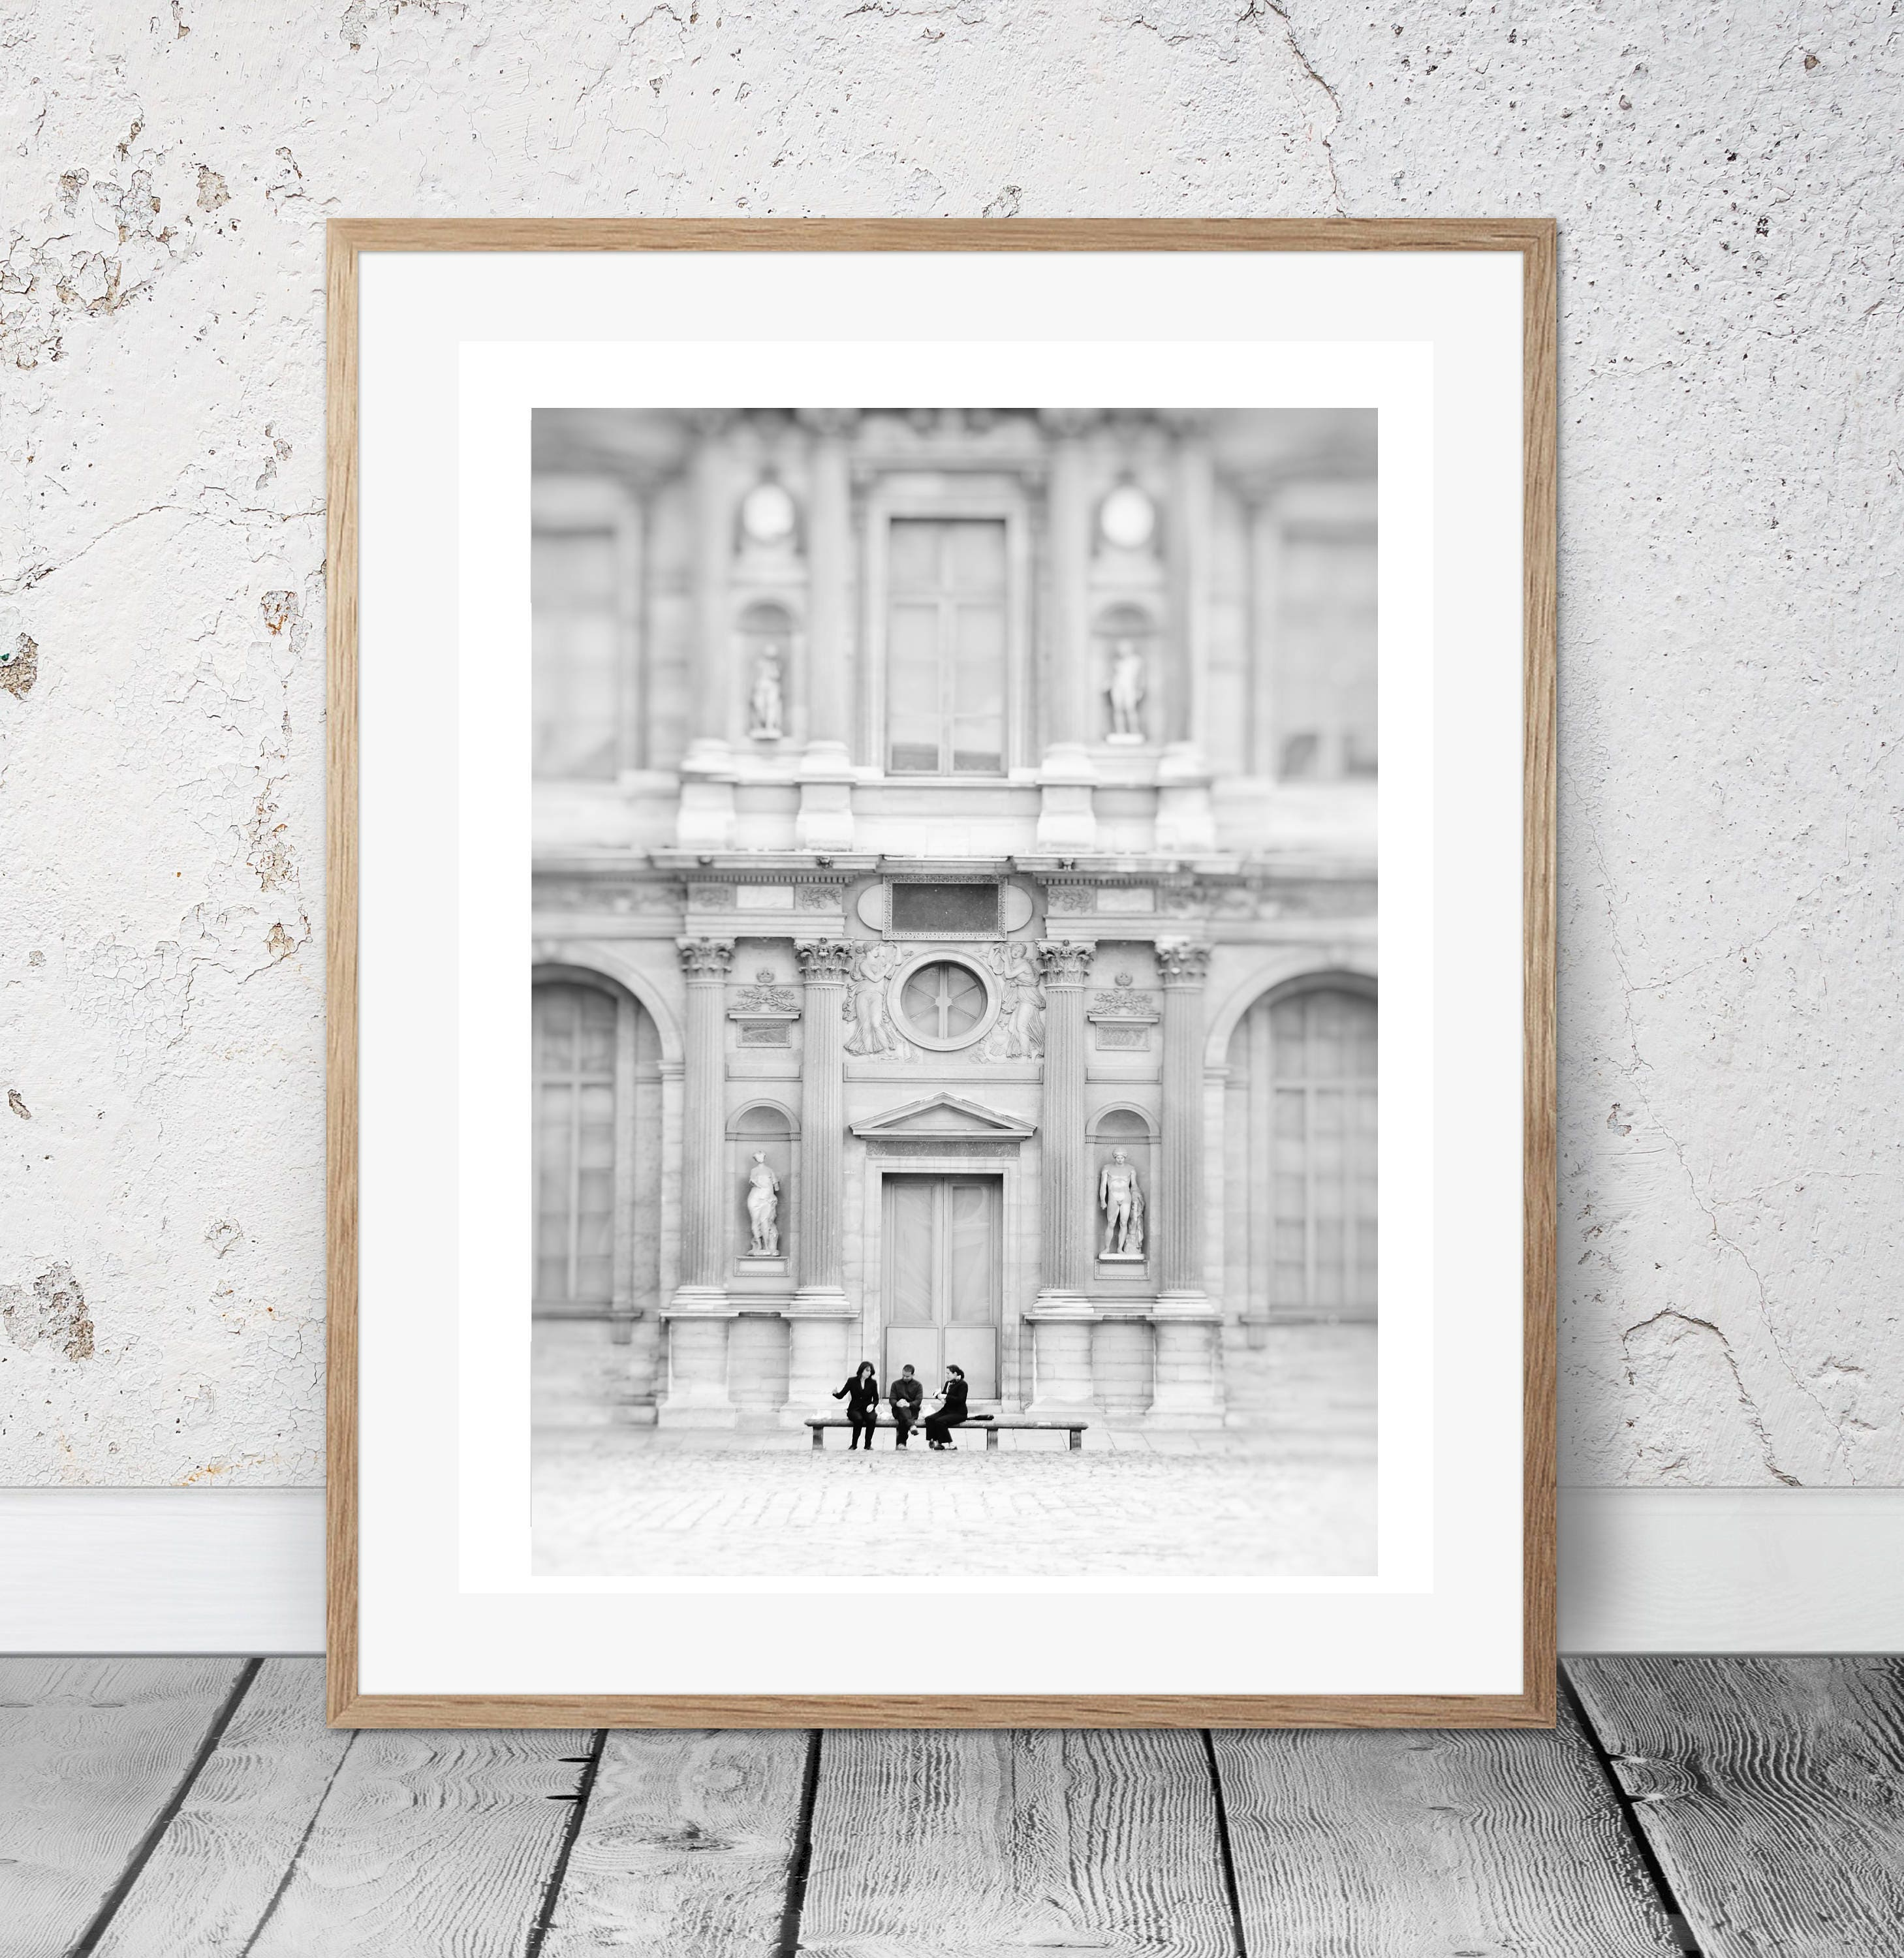 Paris, Wall Art, Photography, Digital Download, Architecture, Digital  Print, Art U0026 Collectibles, Museum, Beautiful Art, Louvre,